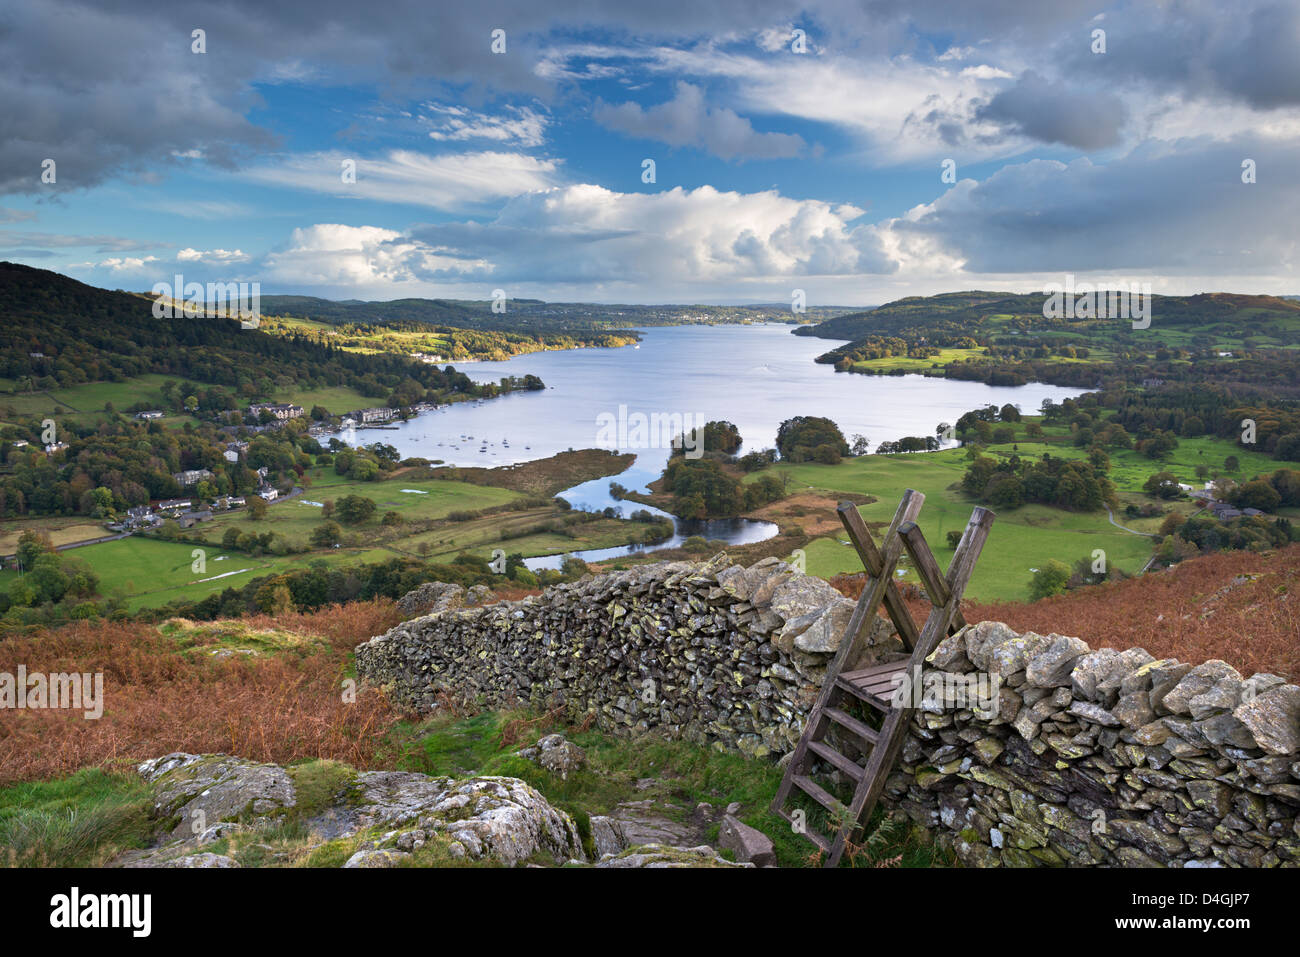 Footpath stile over dry stone wall, overlooking Lake Windermere, Lake District, Cumbria, England. Autumn (October) - Stock Image